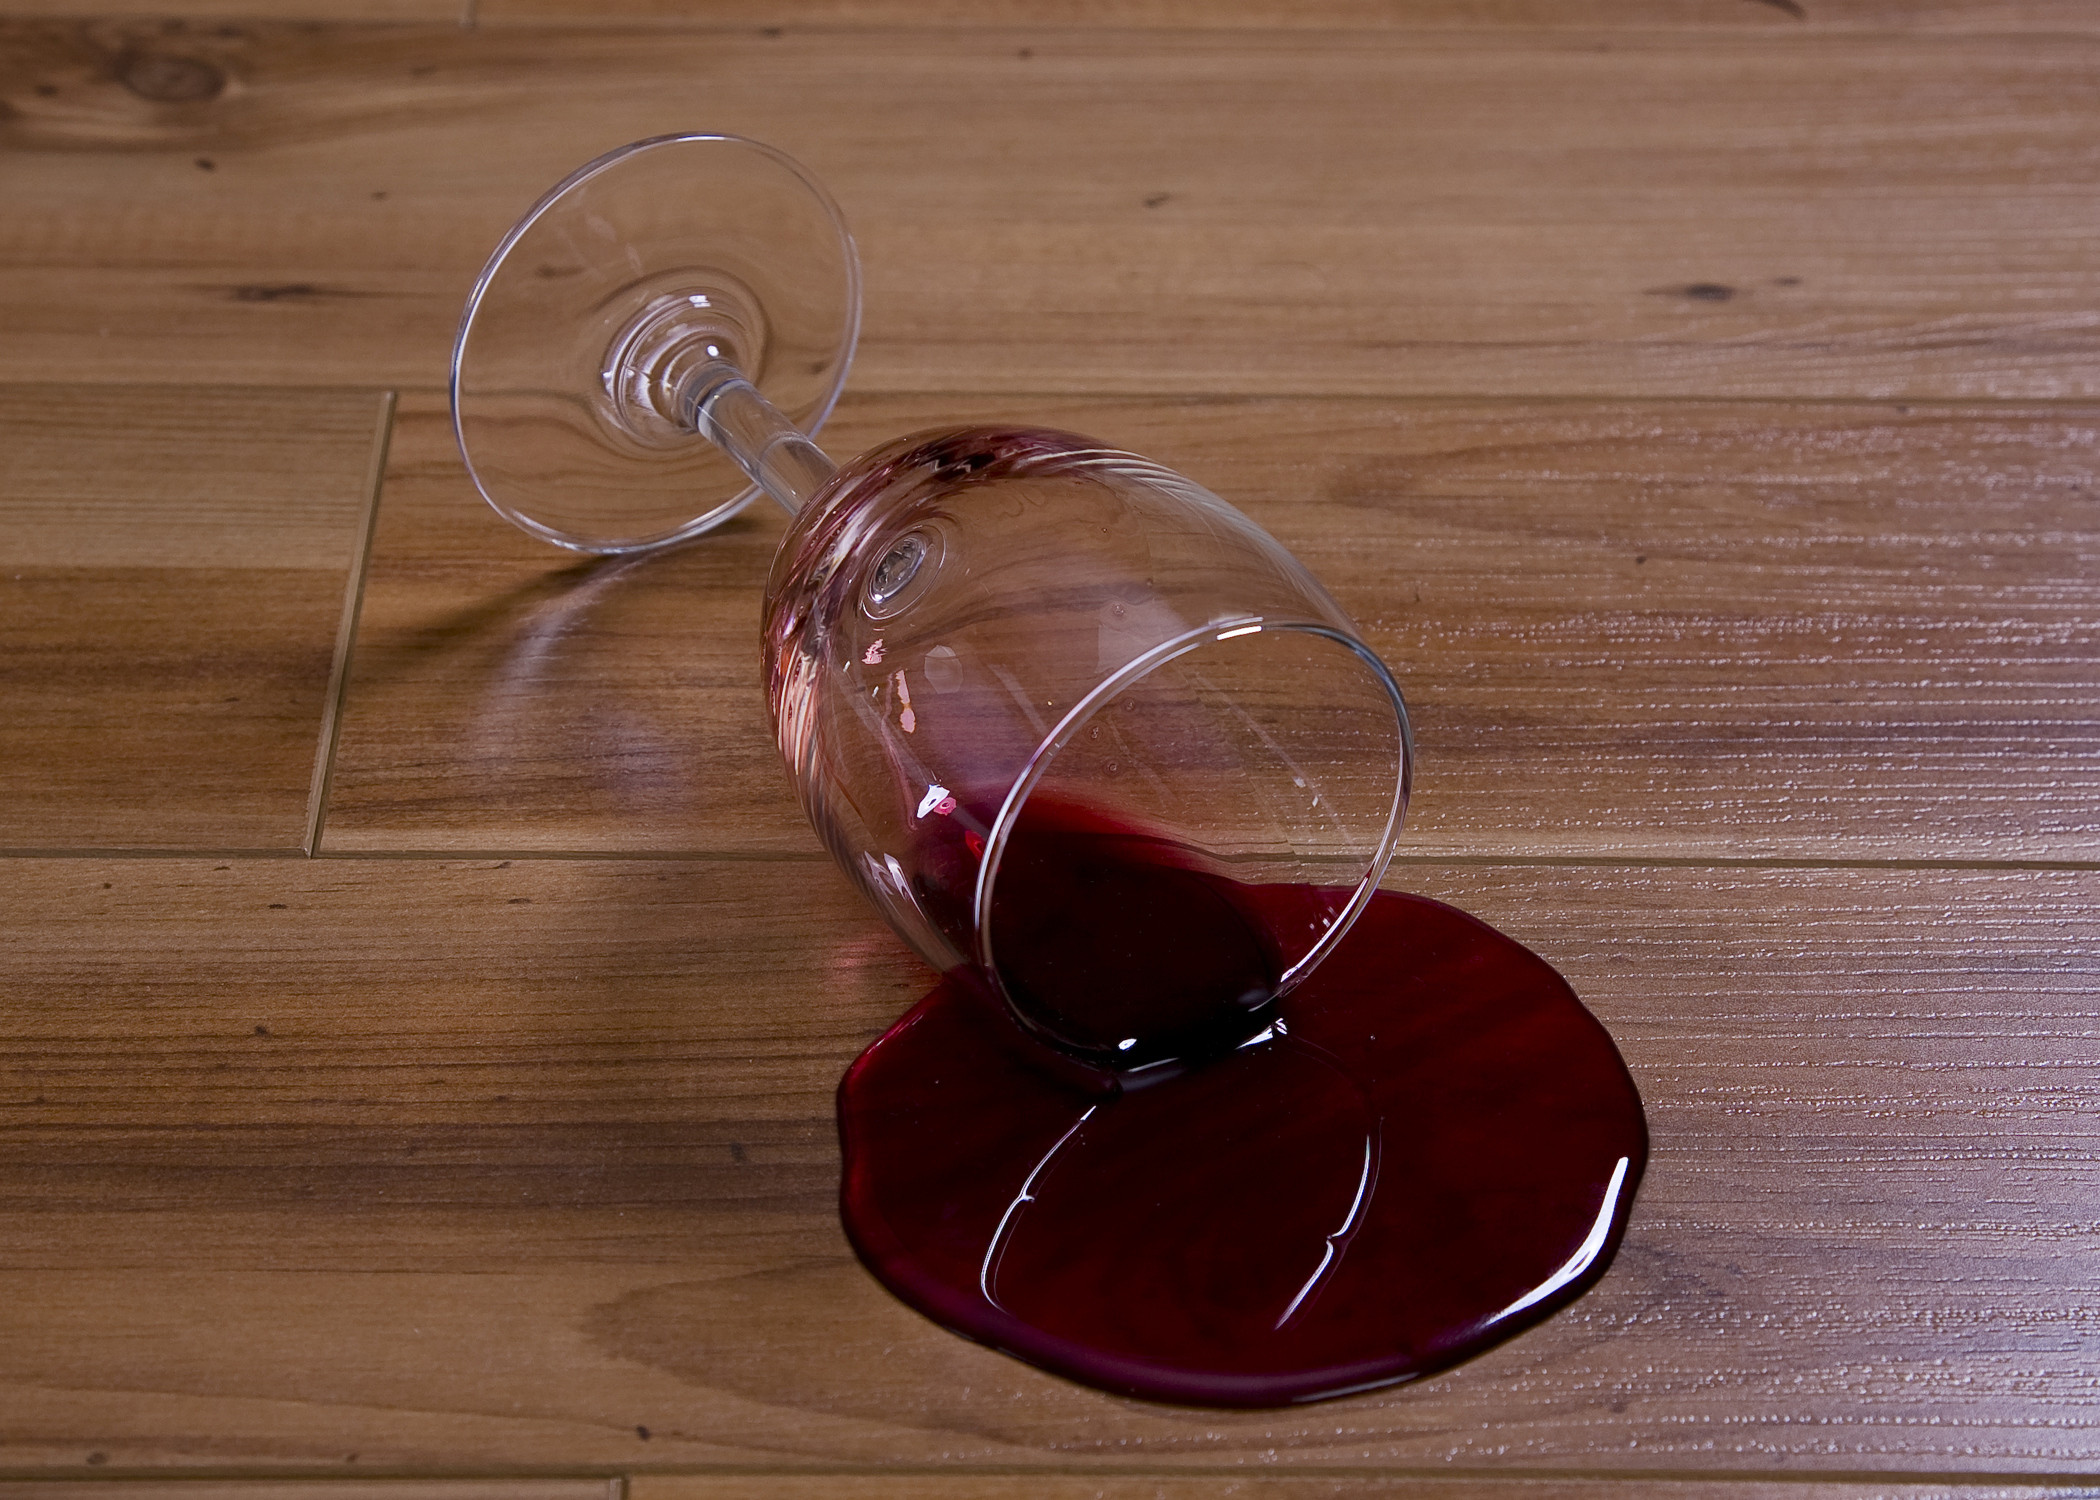 hardwood floor refinishing fredericksburg va of how to remove a red wine stain from a wood floor signature with regard to red wine stain floor